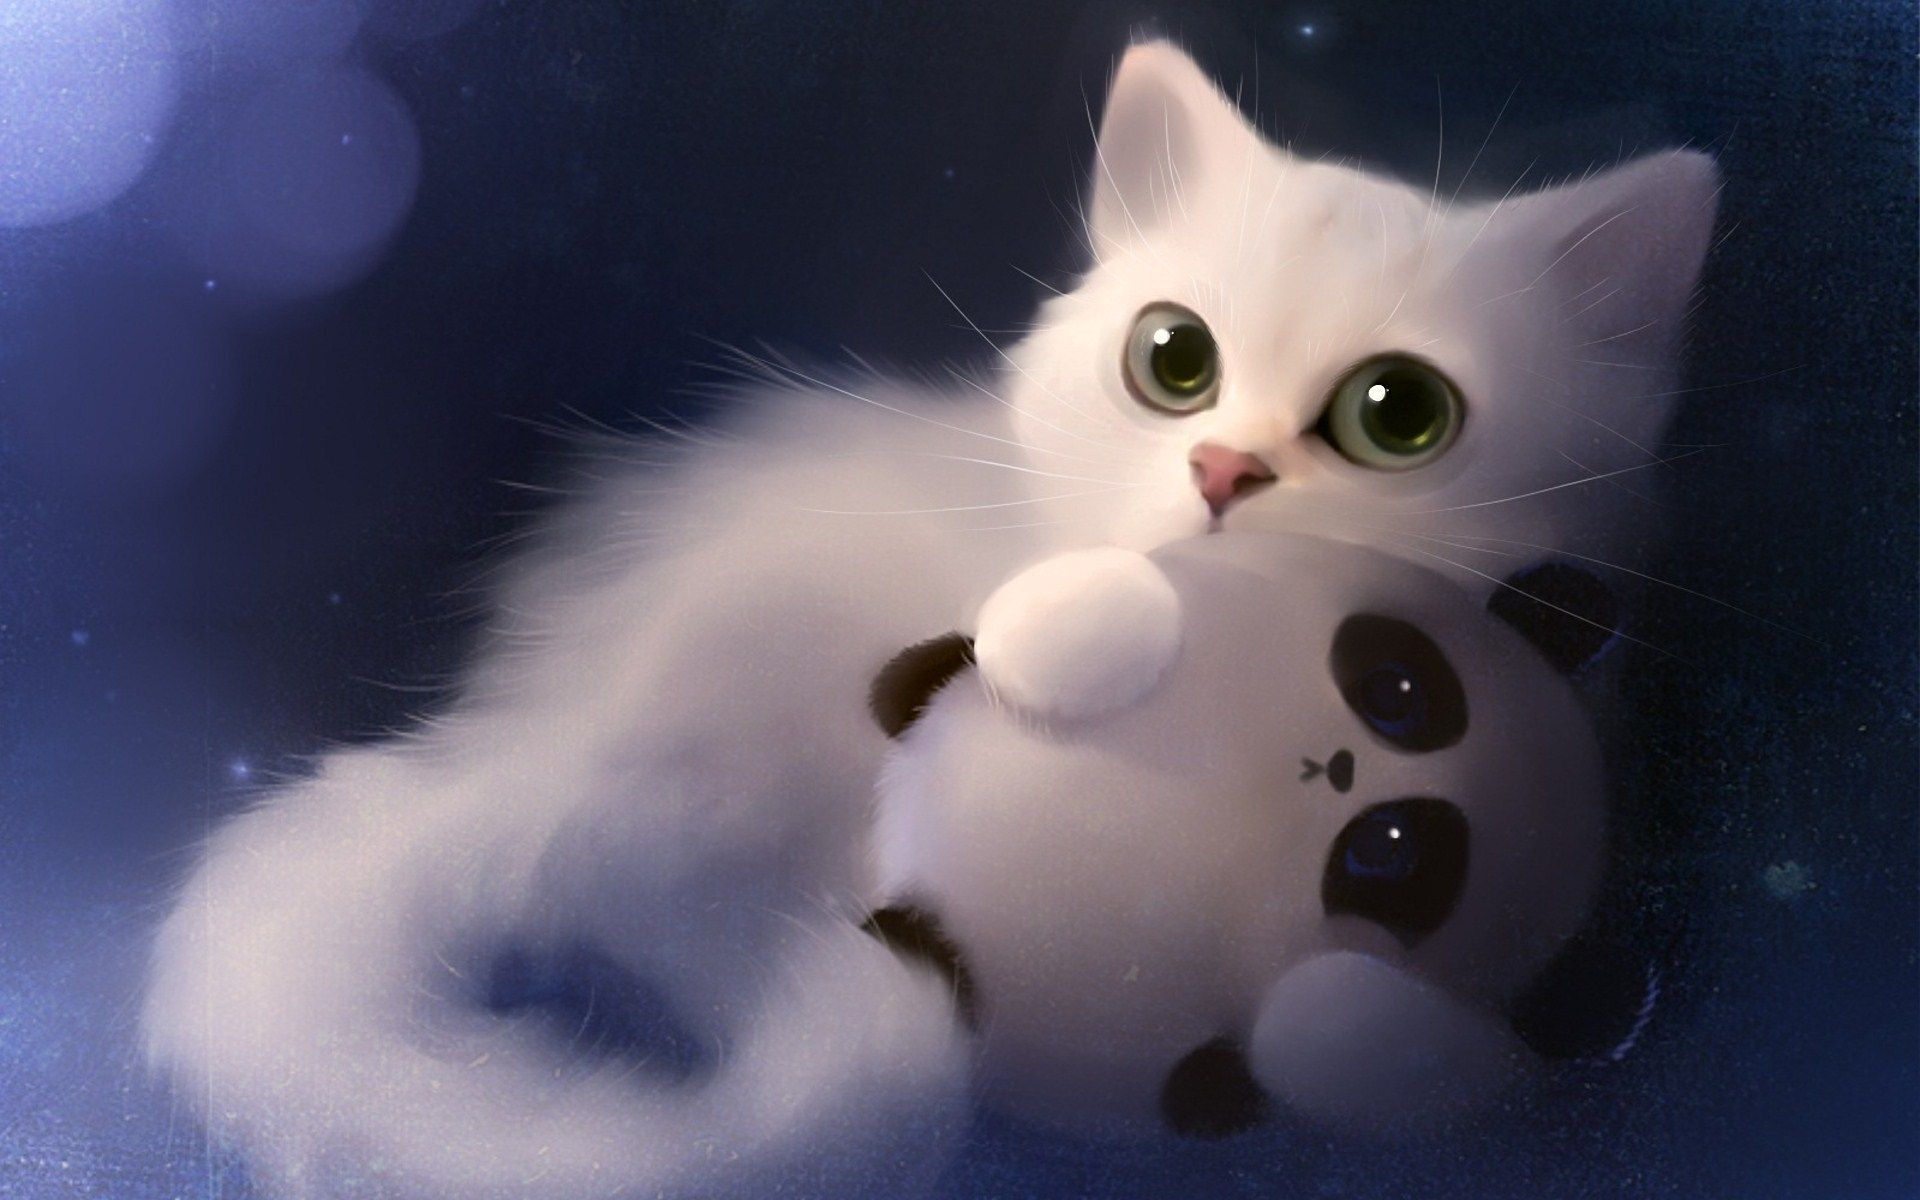 cute wallpapers hd find best latest cute wallpapers hd for your pc